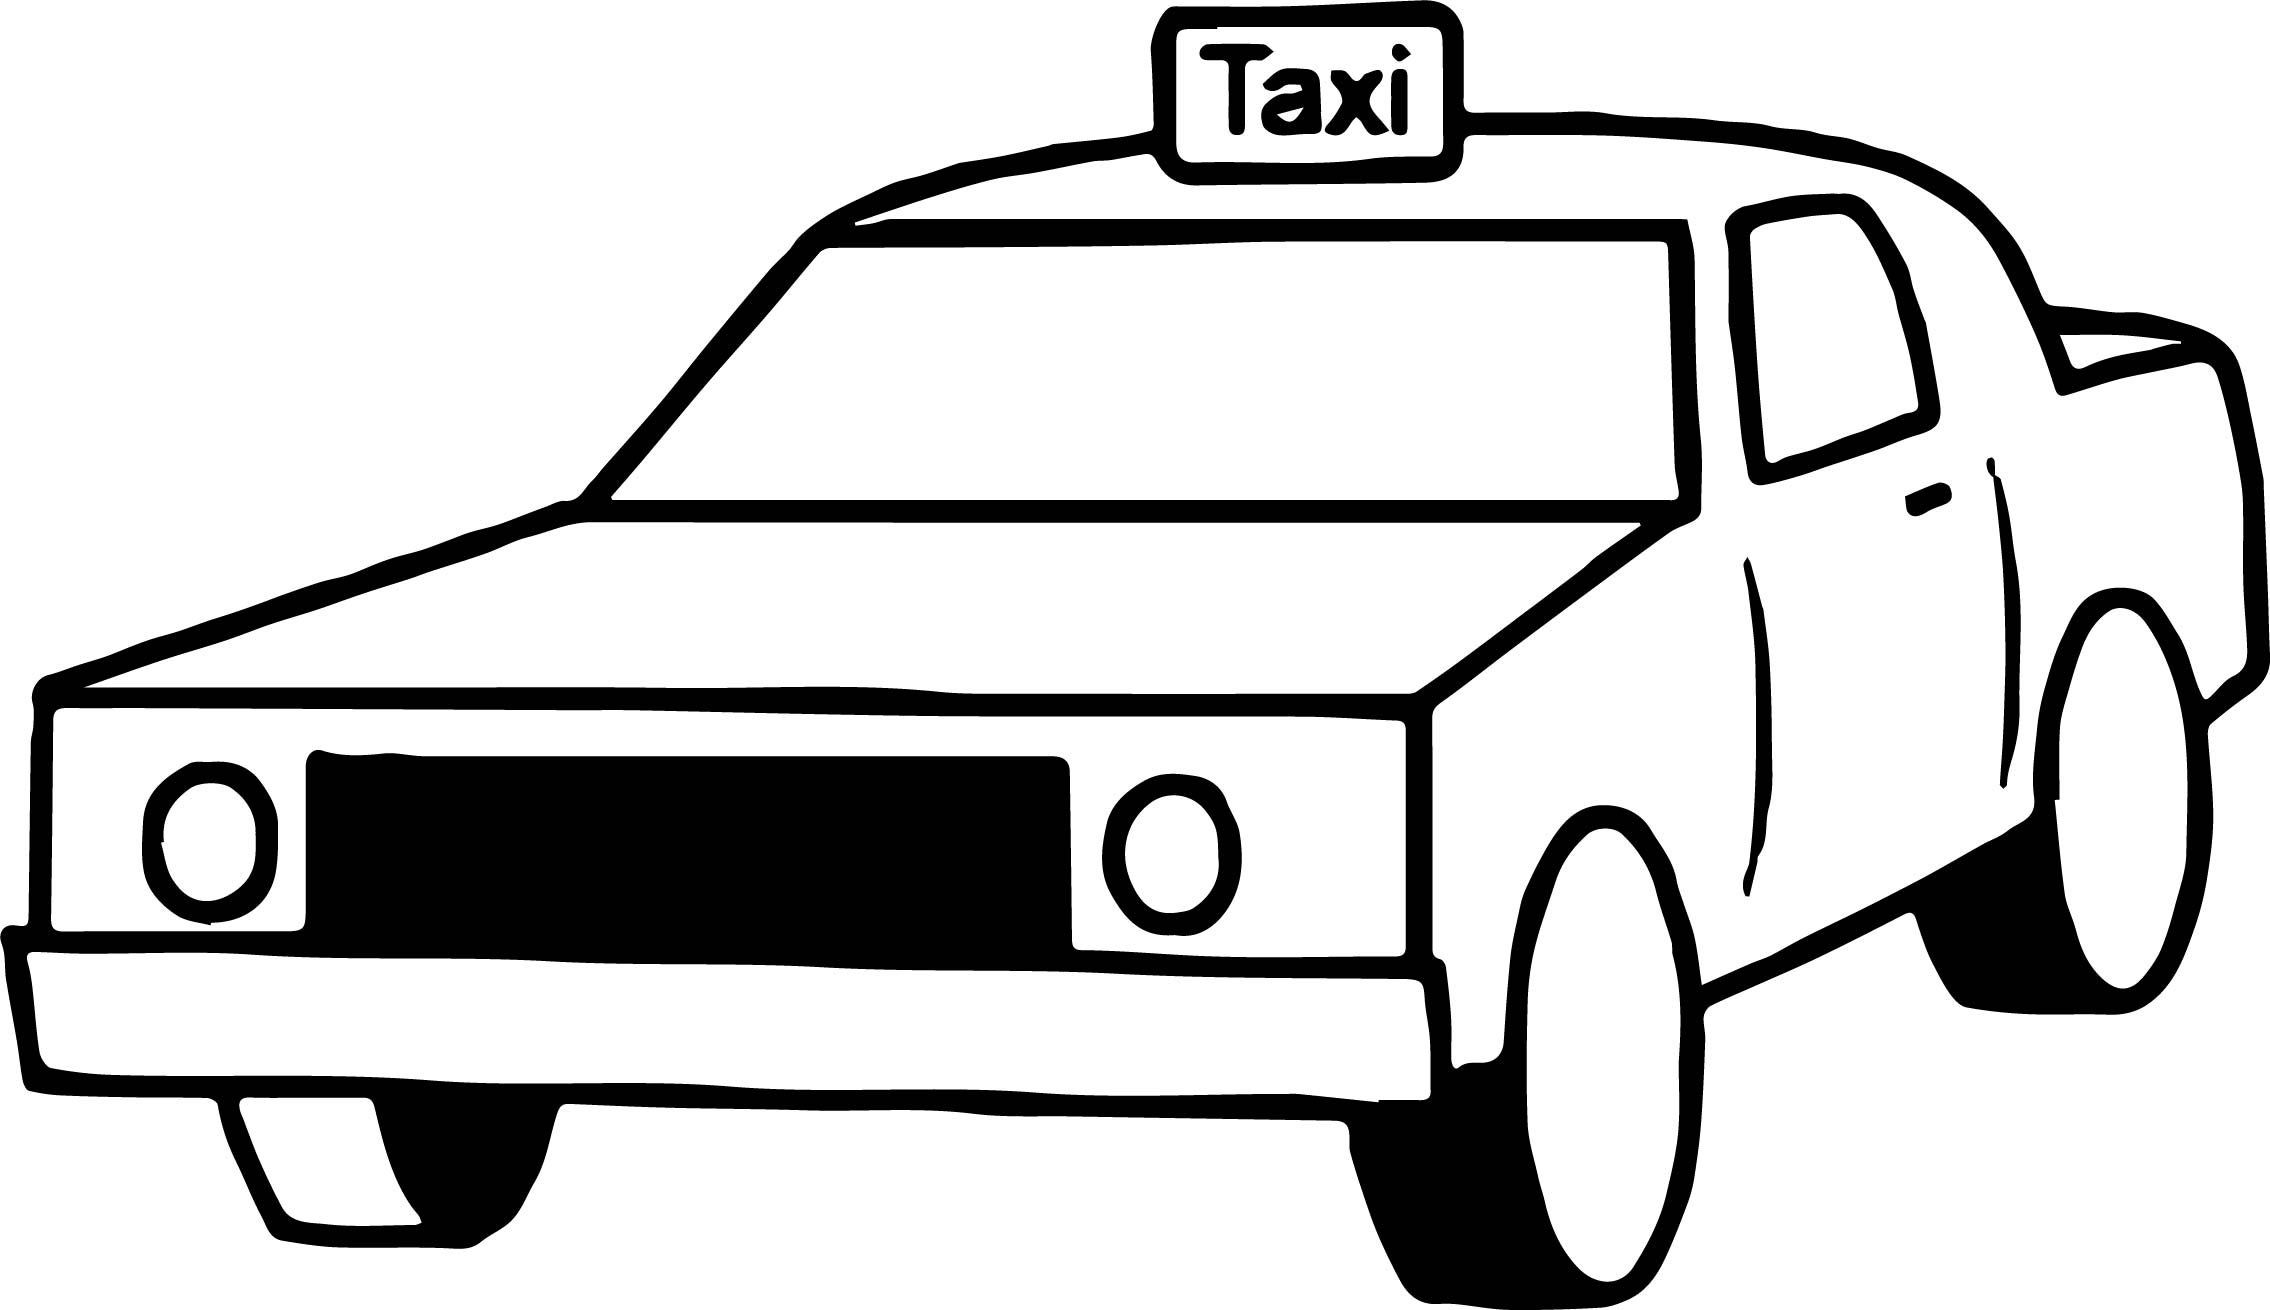 taxi colouring pages taxi sheet coloring pages colouring pages taxi